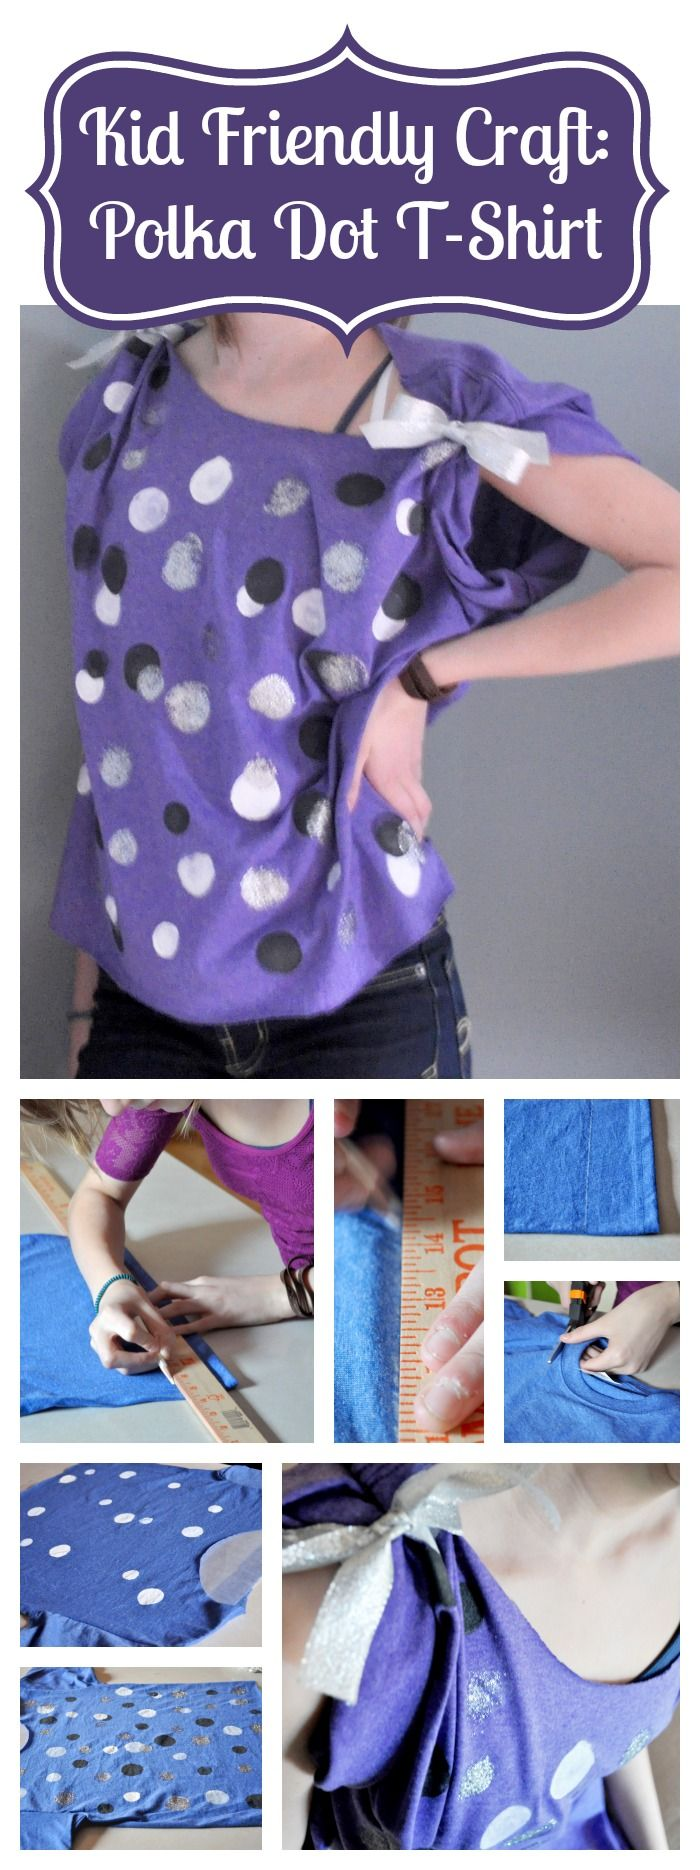 Kid Friendly Craft: Painted Polka Dot T-Shirt - The Love Nerds